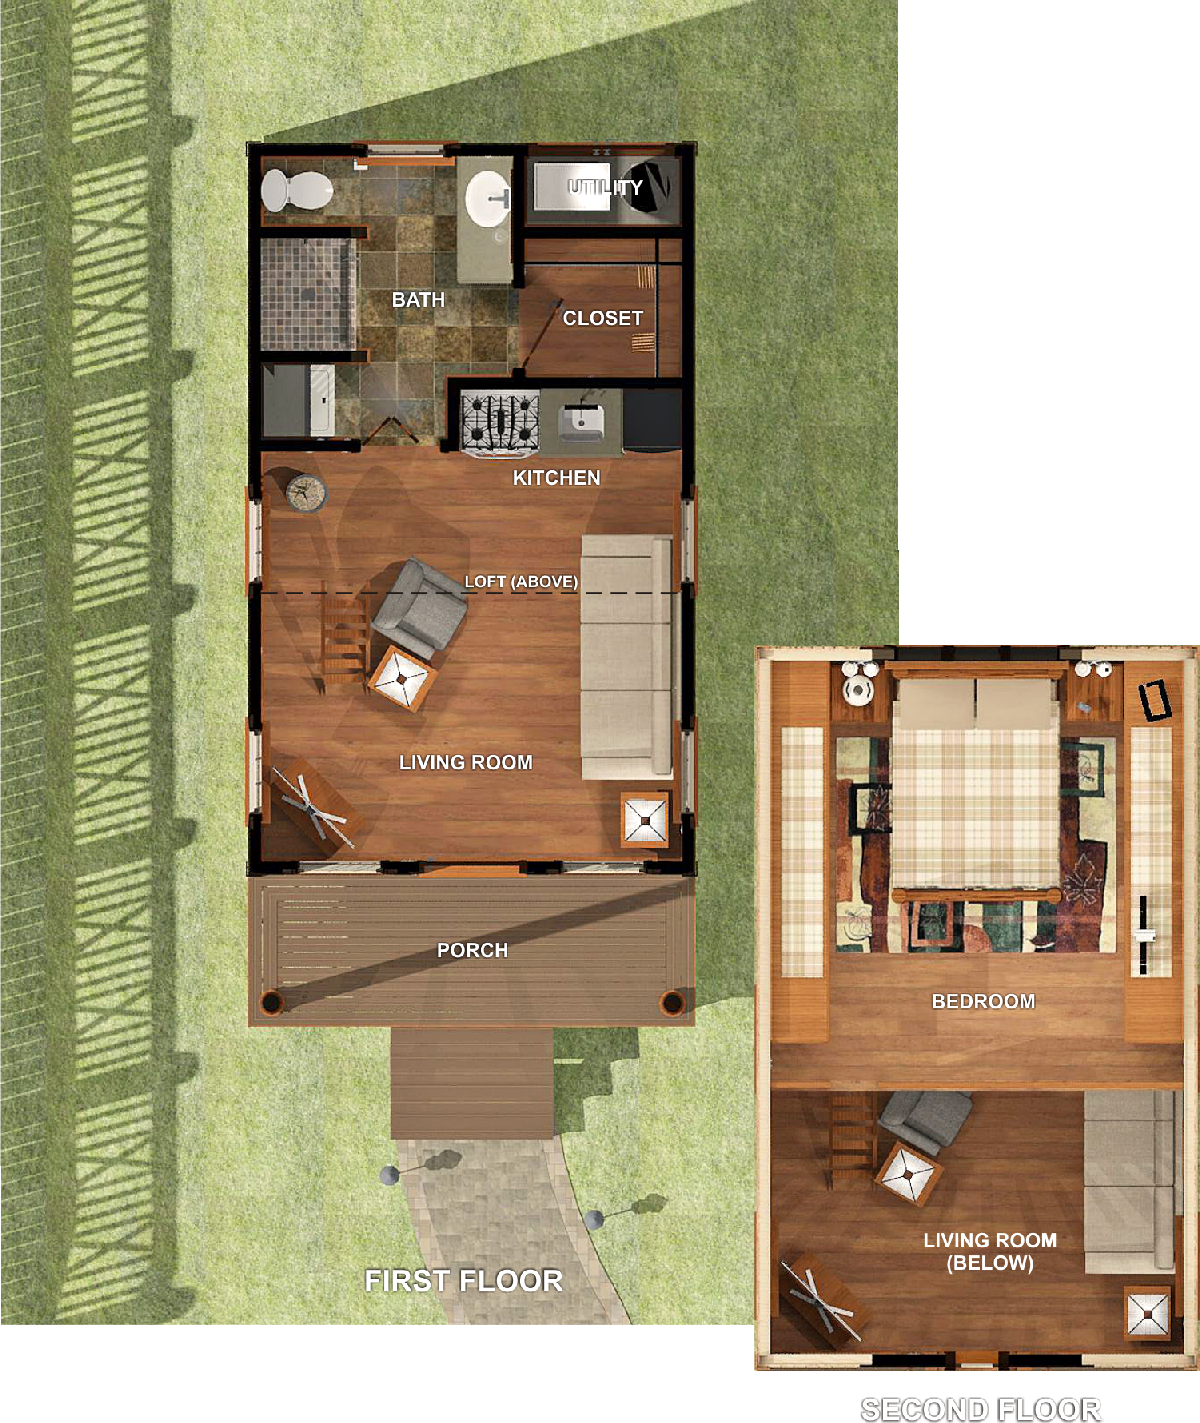 Presentation drawing room. Texas tiny homes plan